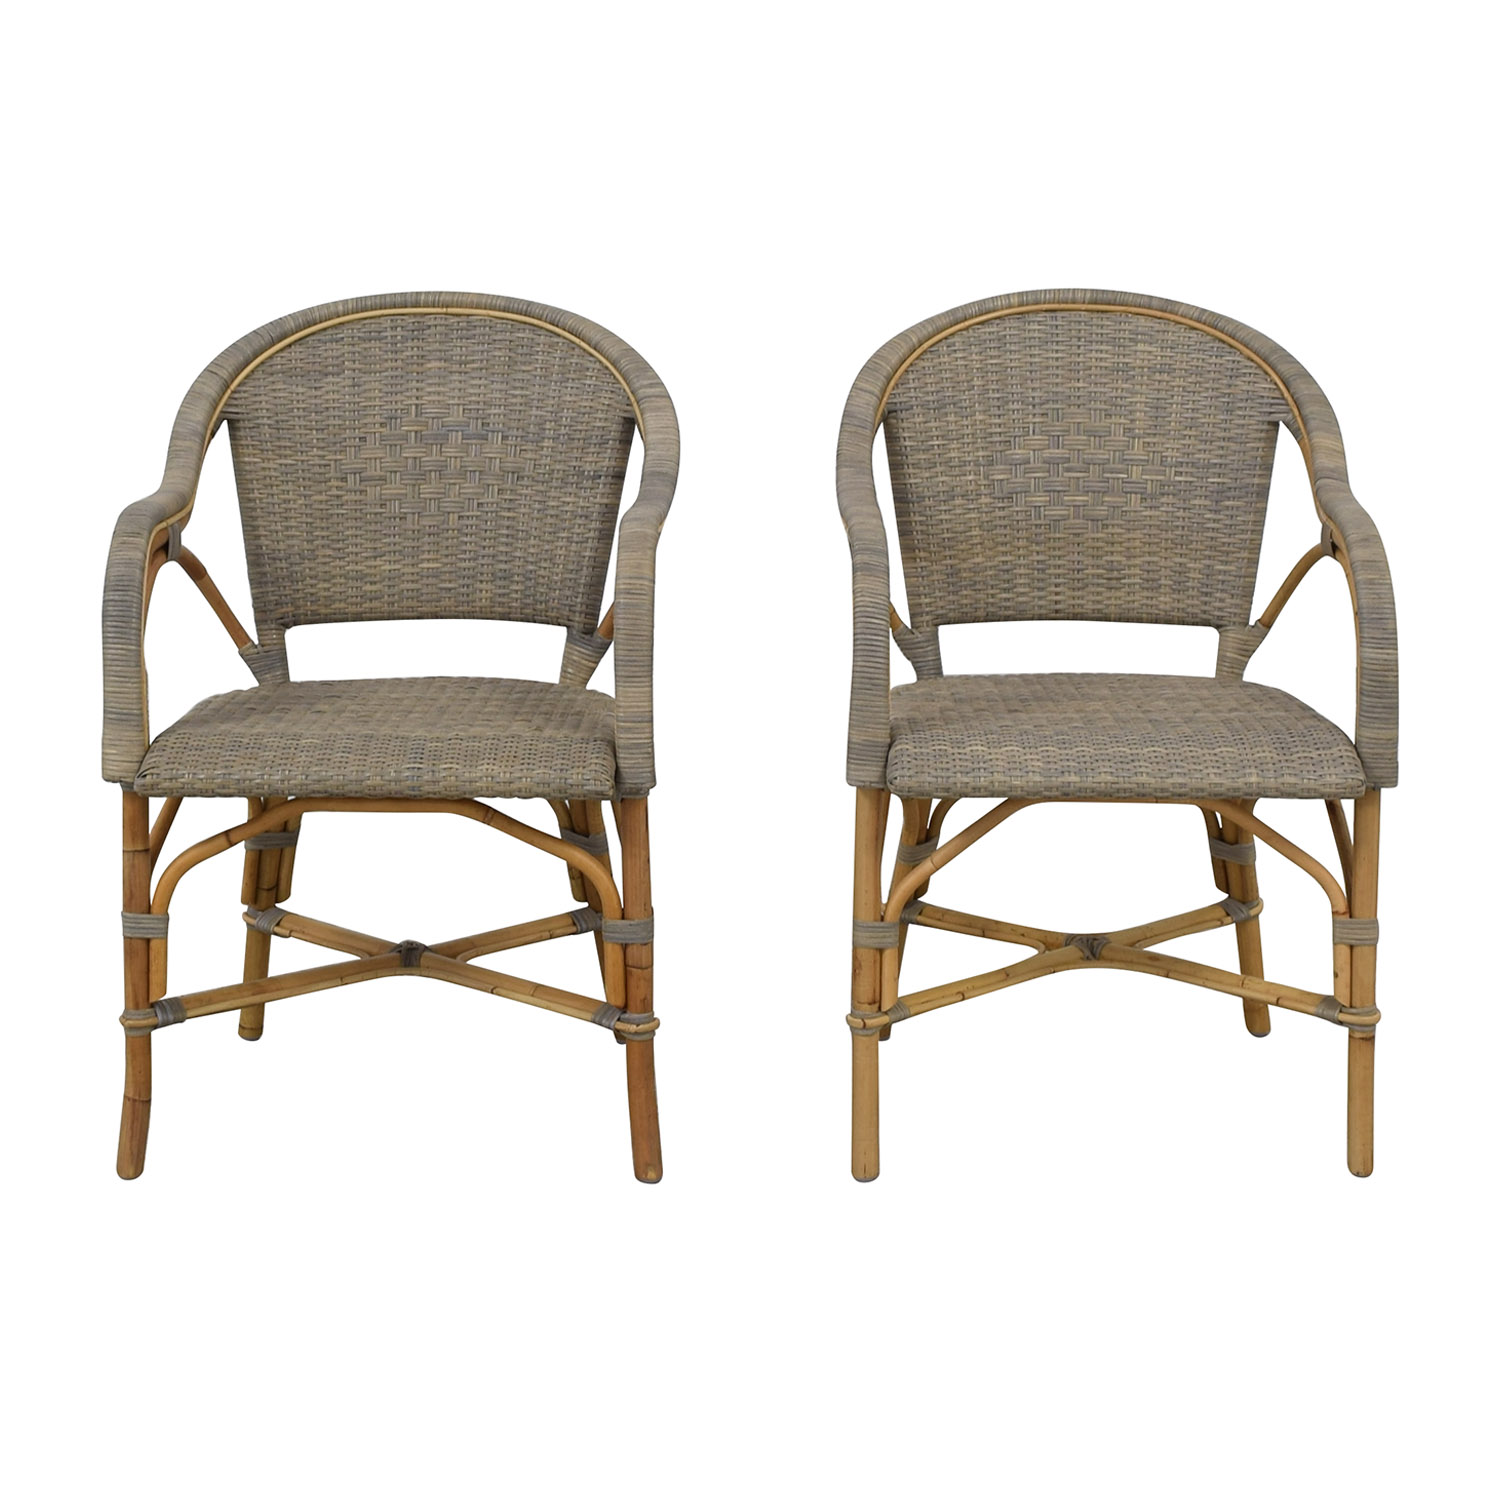 Serena & Lily Serena & Lily Sunwashed Riviera Armchairs nj